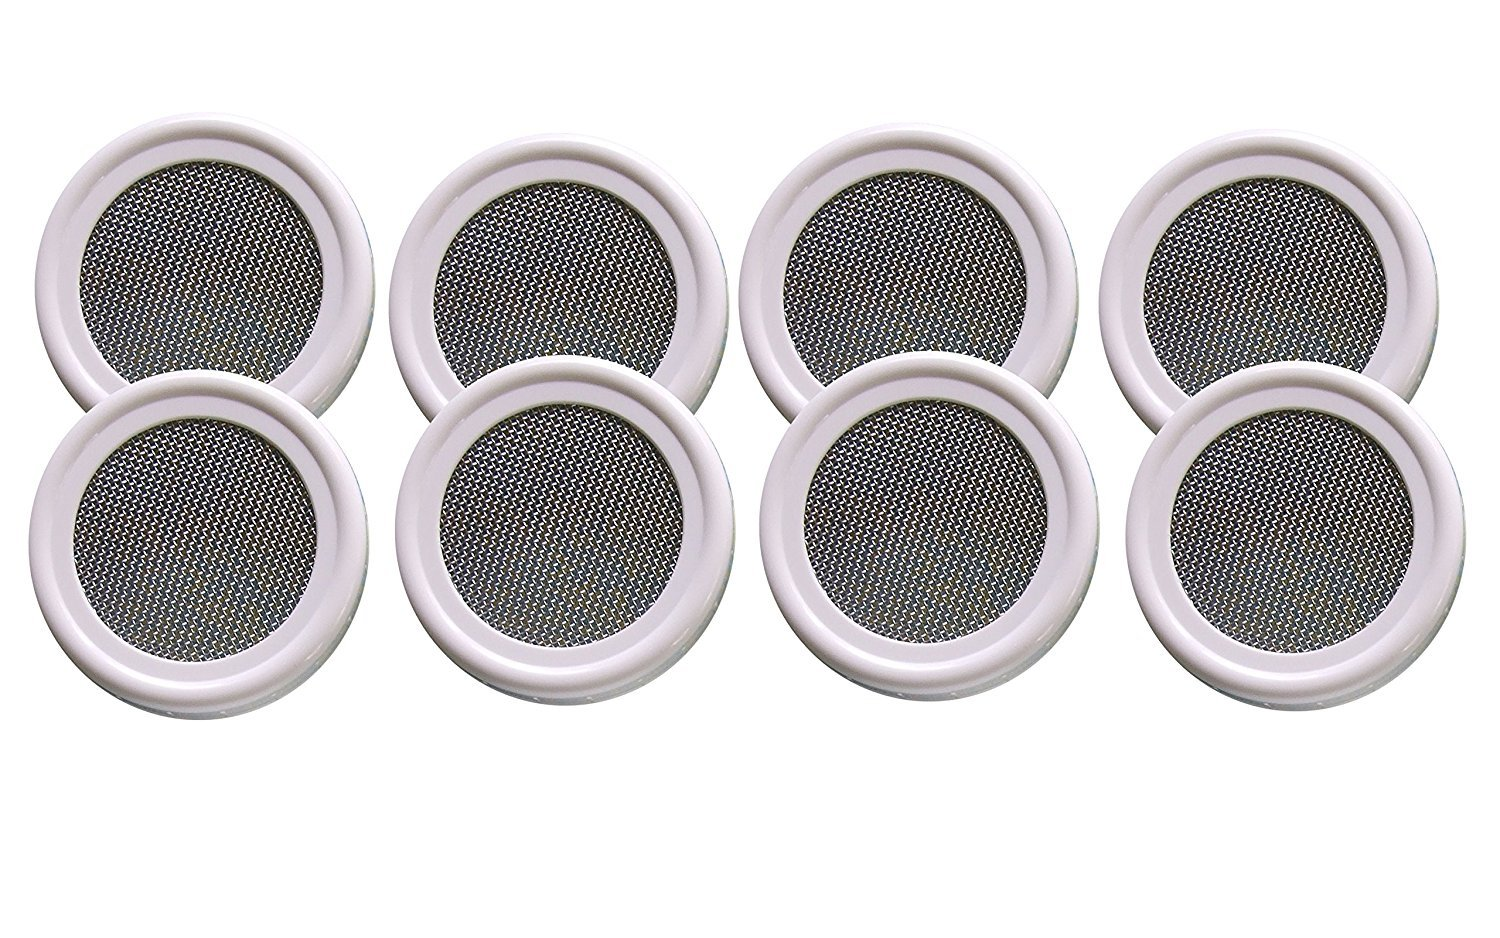 Sprouting Lid for Mason Jars 'The Original Speed Strainer Lid'® (Set of 8 Wide Mouth Lids) for Sprouts, Sprouting, Sifting, & Straining Unbound Farm®